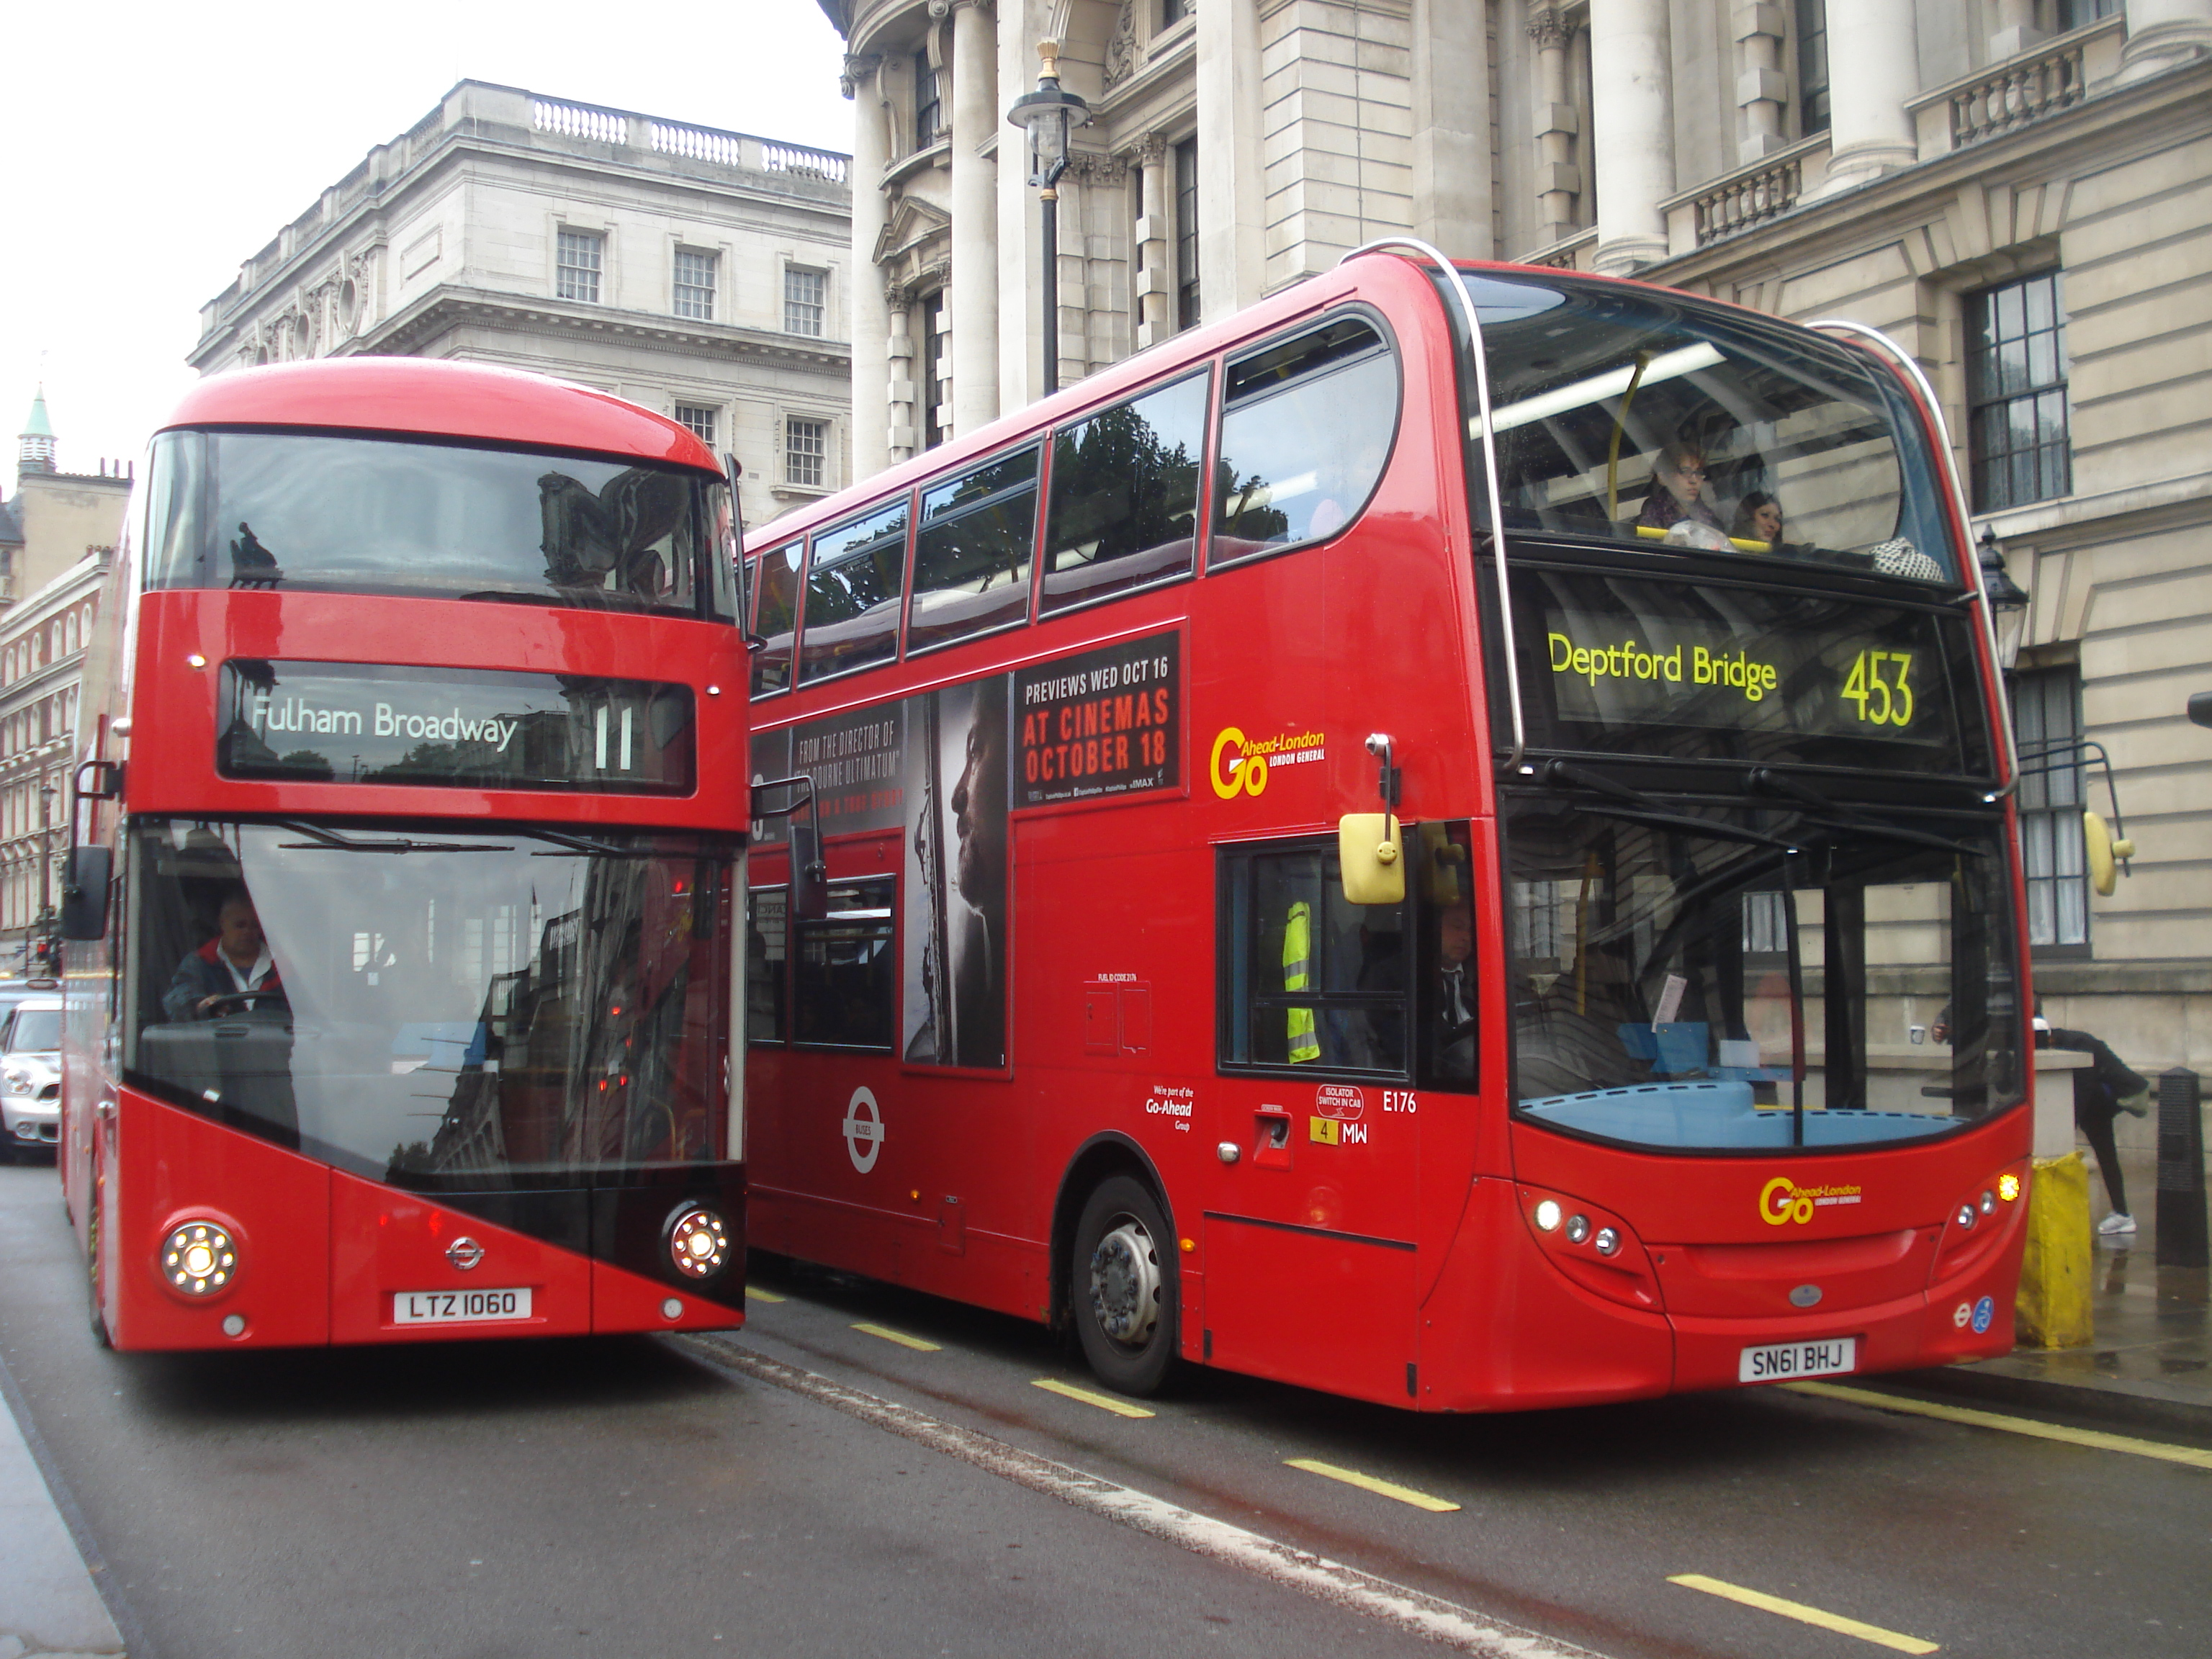 New Routemaster overtaking the Enviro400 for the 453